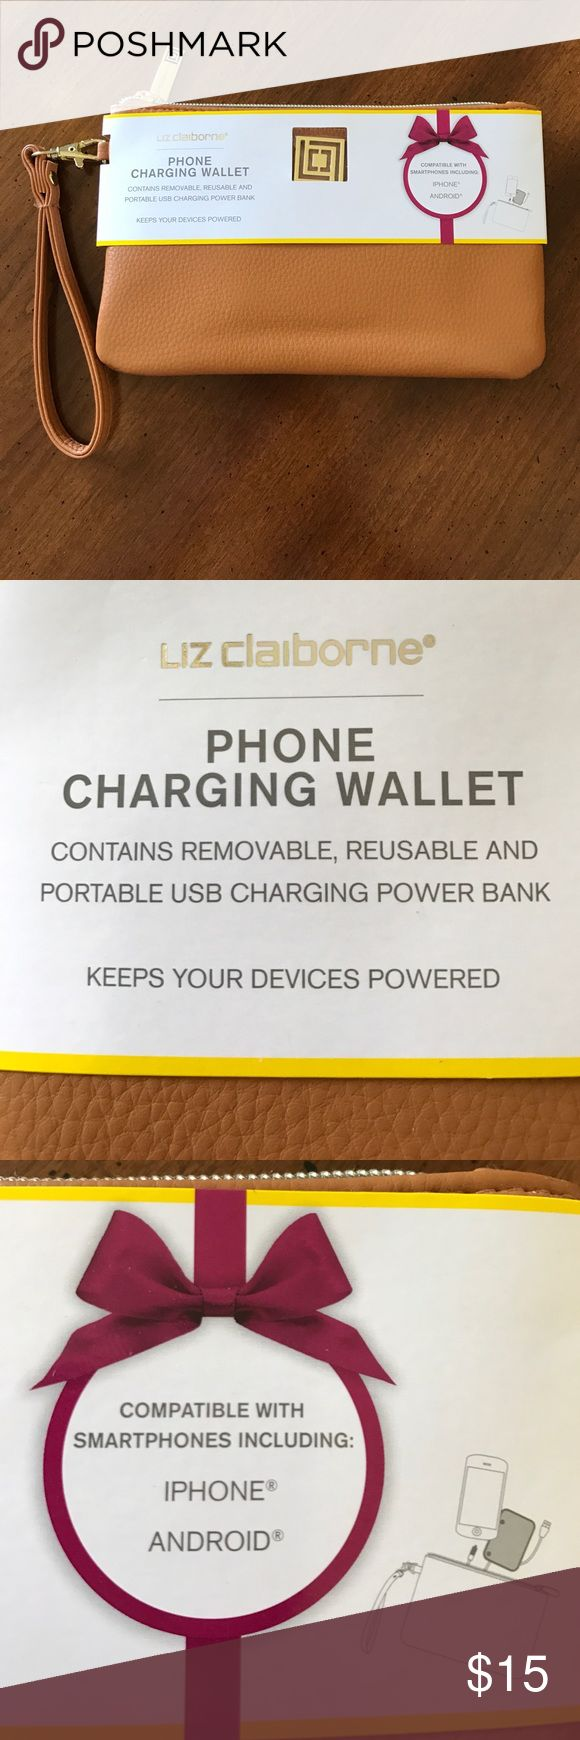 NEW Liz Claiborne Phone Charging Wallet Please read all instructions to make sure yours is compatible ❤ Liz Claiborne Bags Wallets